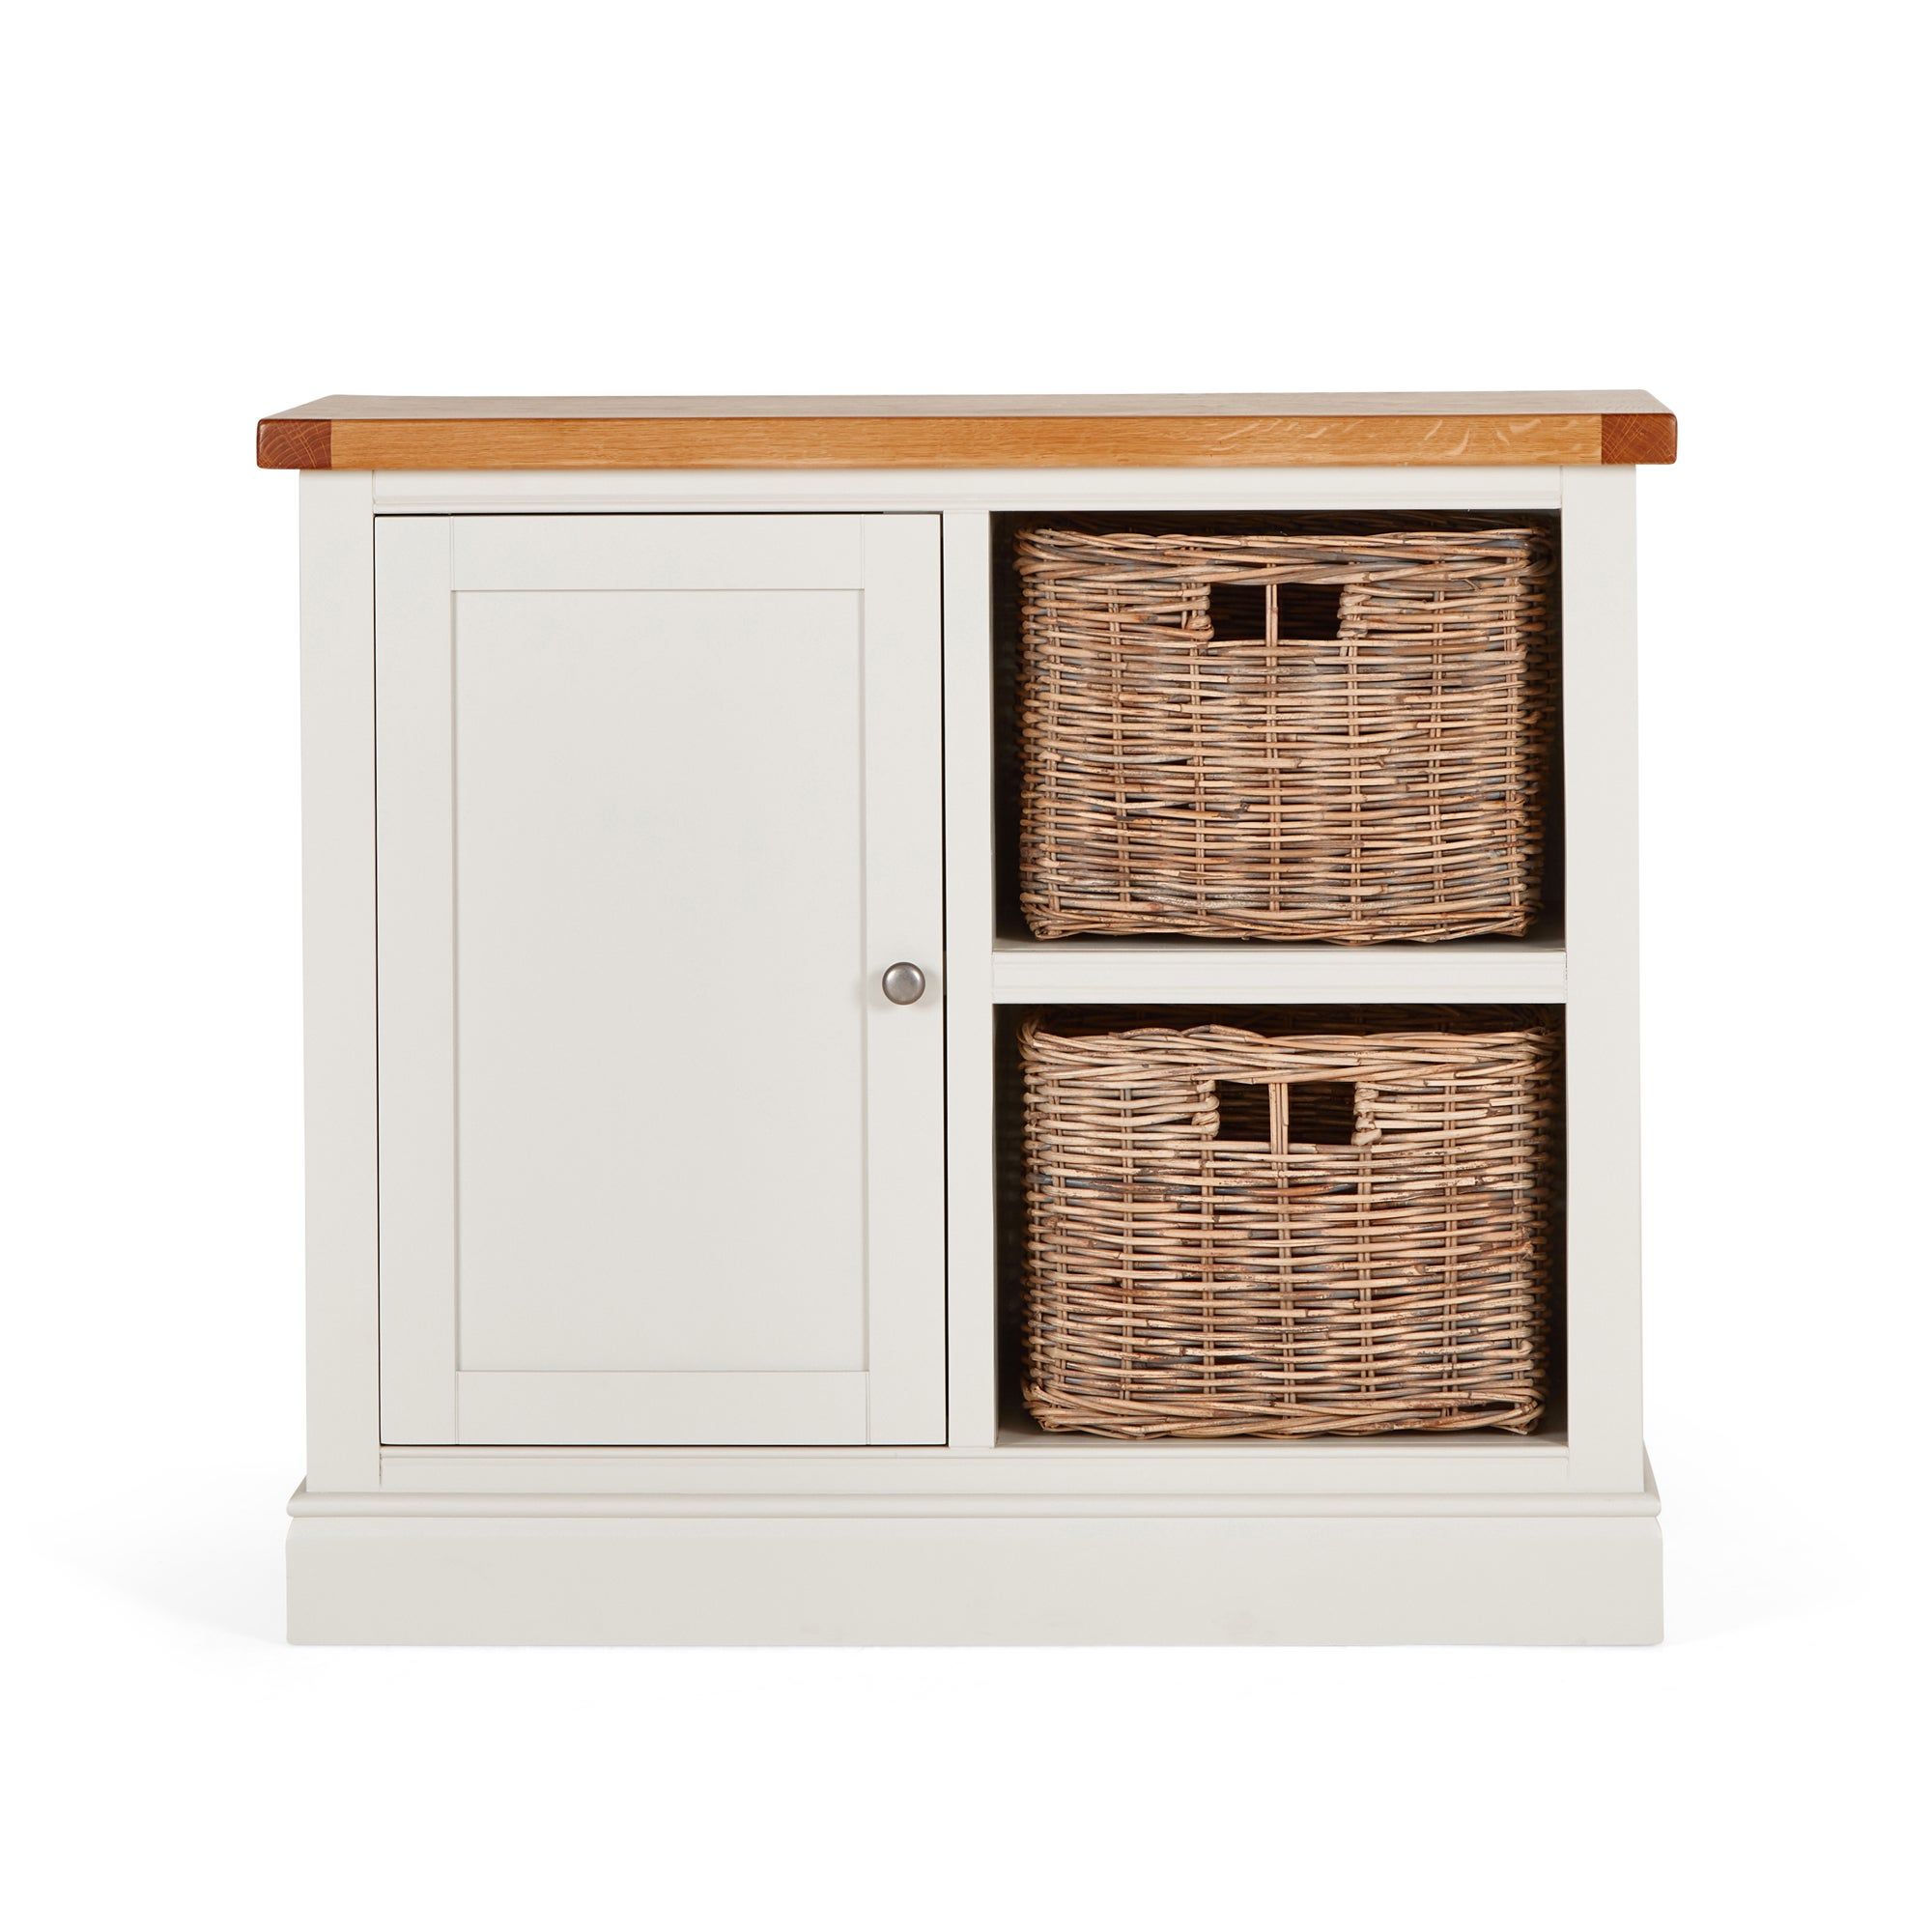 Compton Ivory Small Sideboard with Baskets Cream and Brown